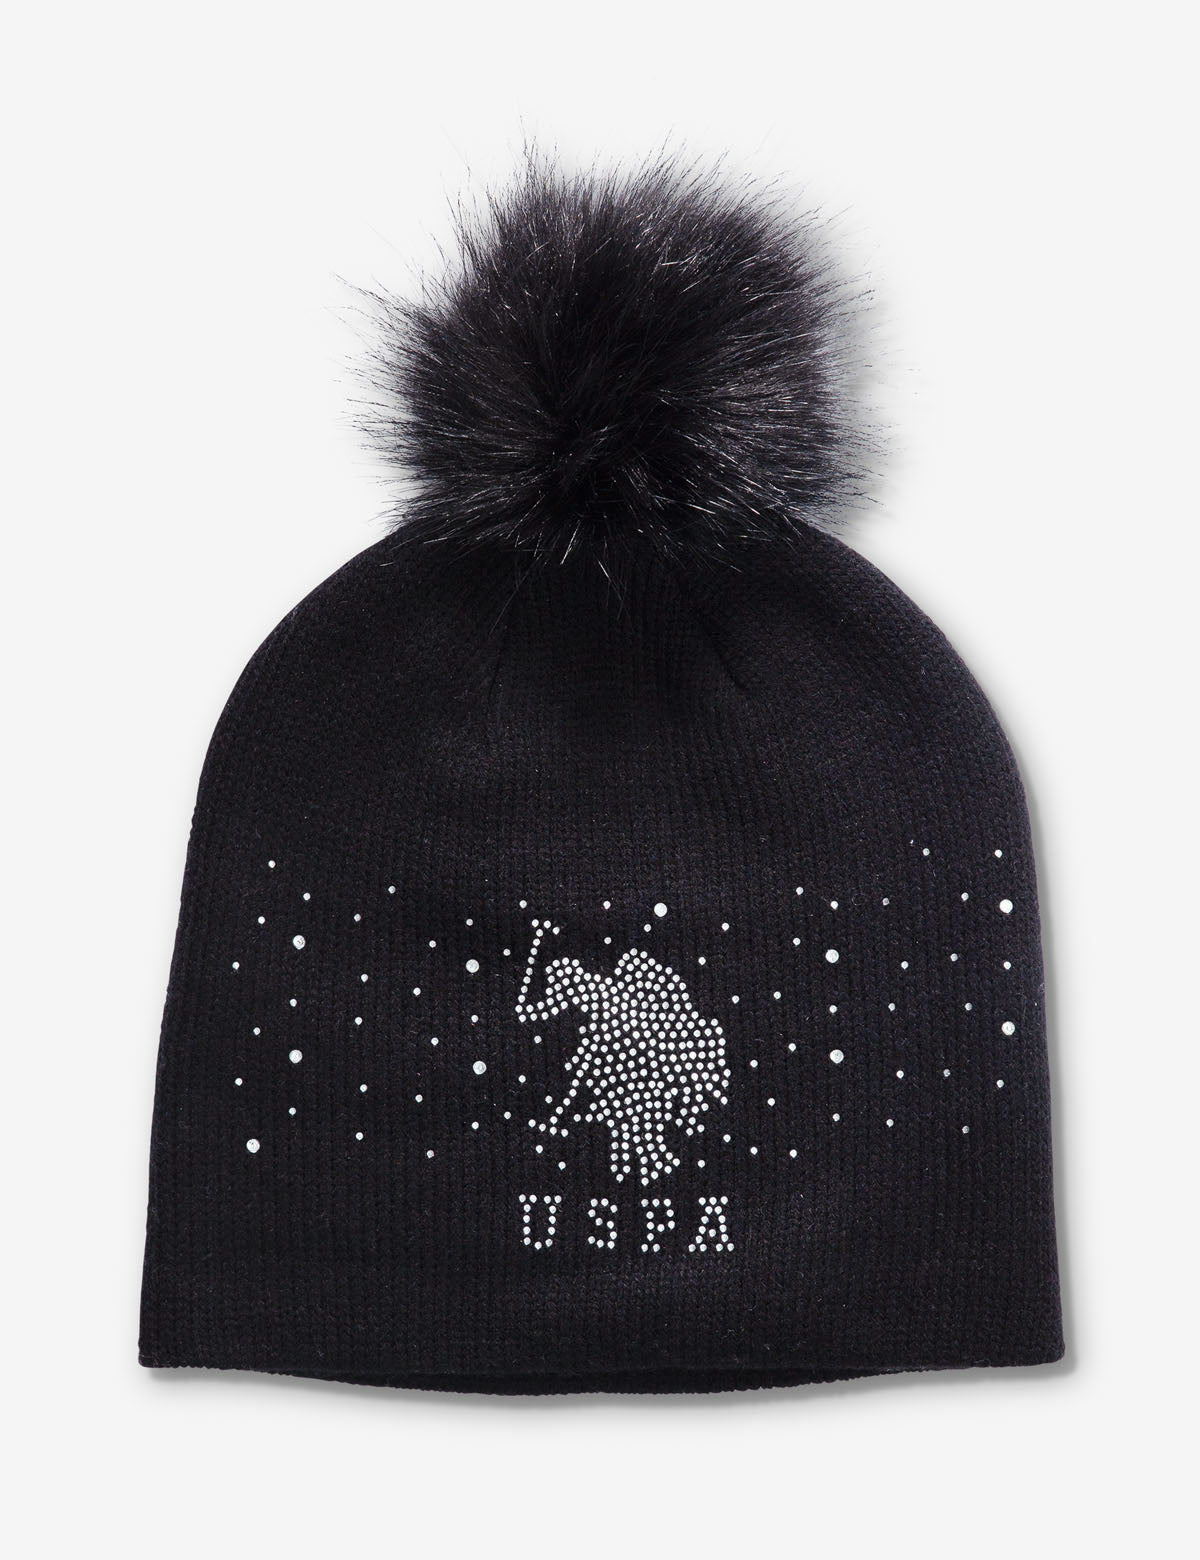 RHINESTONE BEANIE WITH POM POM ON TOP